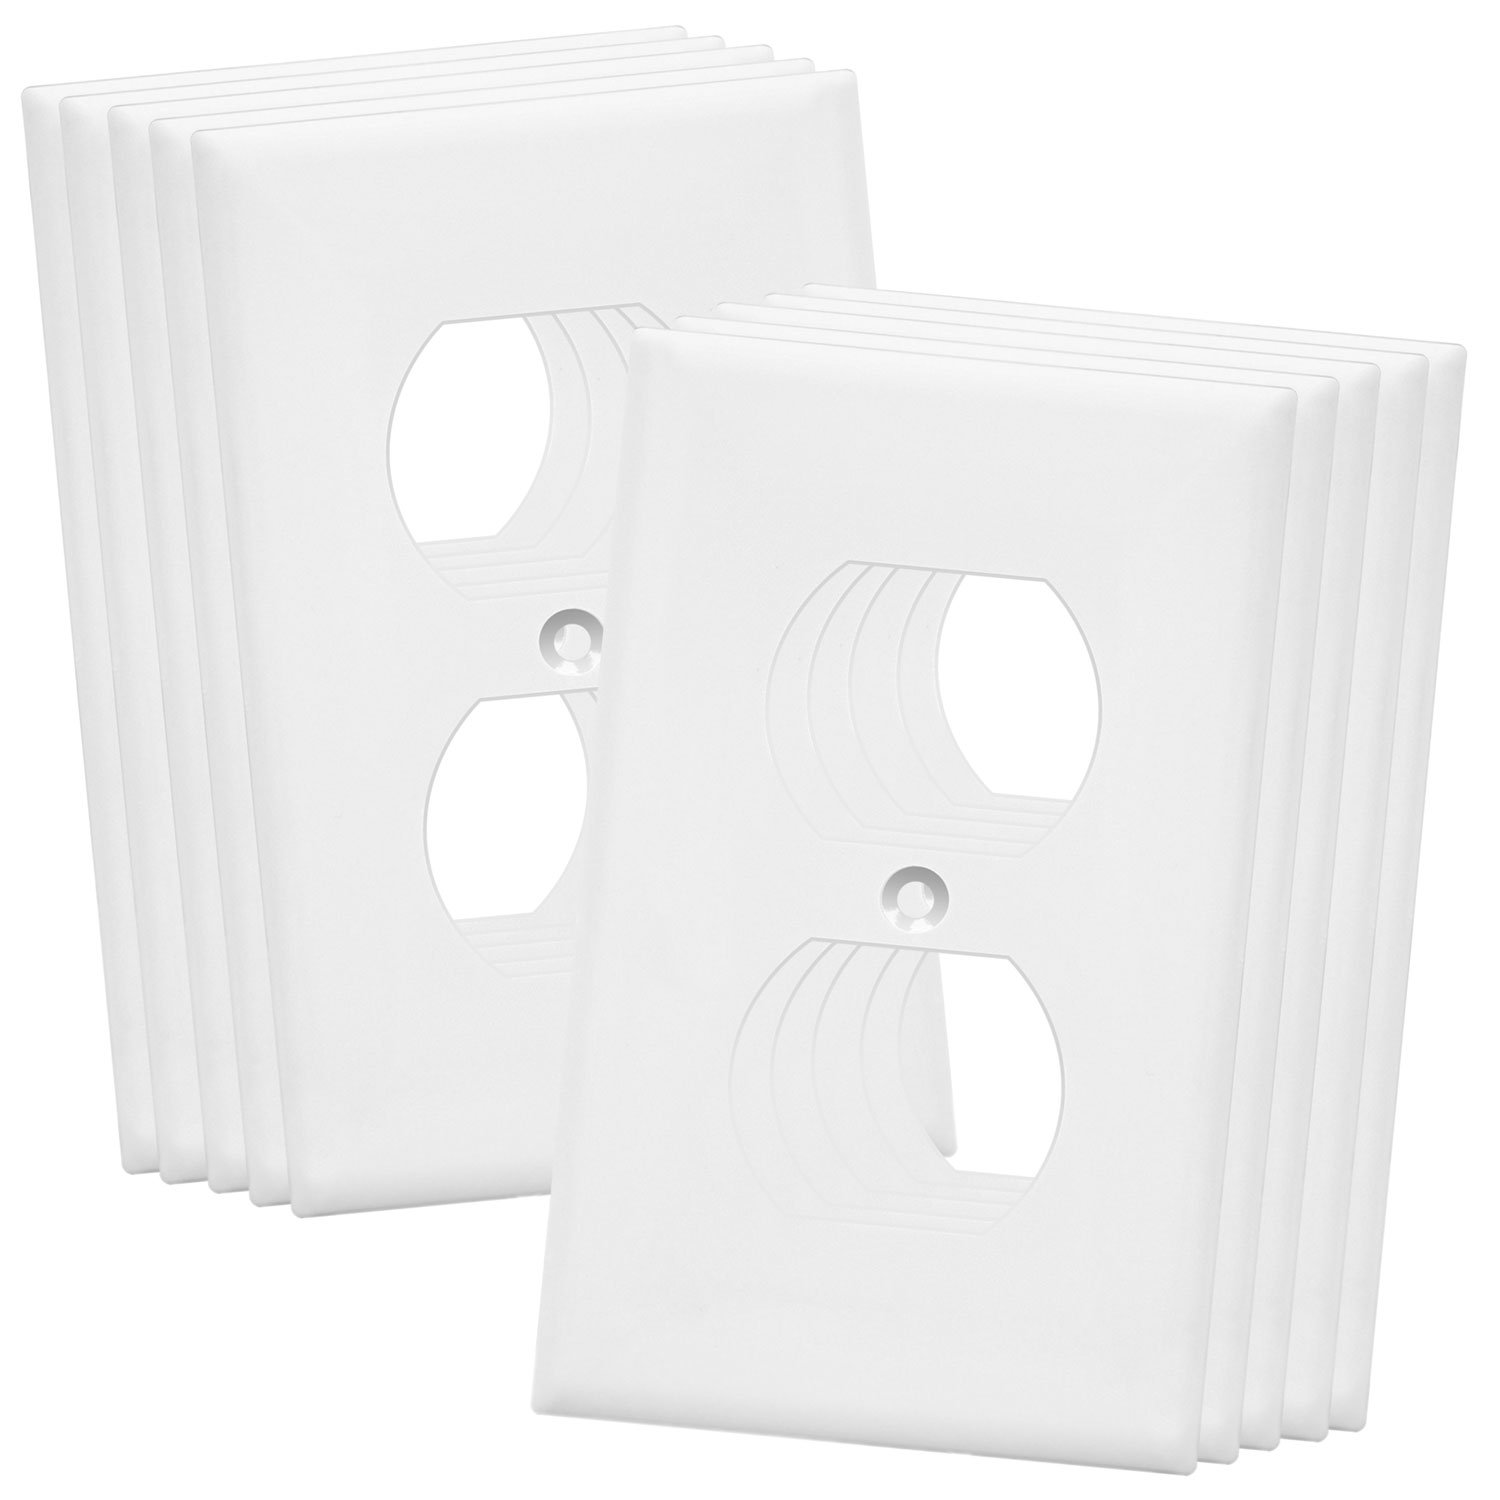 Enerlites Fba 8821 W Enerlites Duplex Wall Plates Kit Model 8821 W Home Electrical Outlet Cover 1 Gang Standard Size Unbreakable Polycarbonate Material White 10 Pack Amazon Com Home Improvement